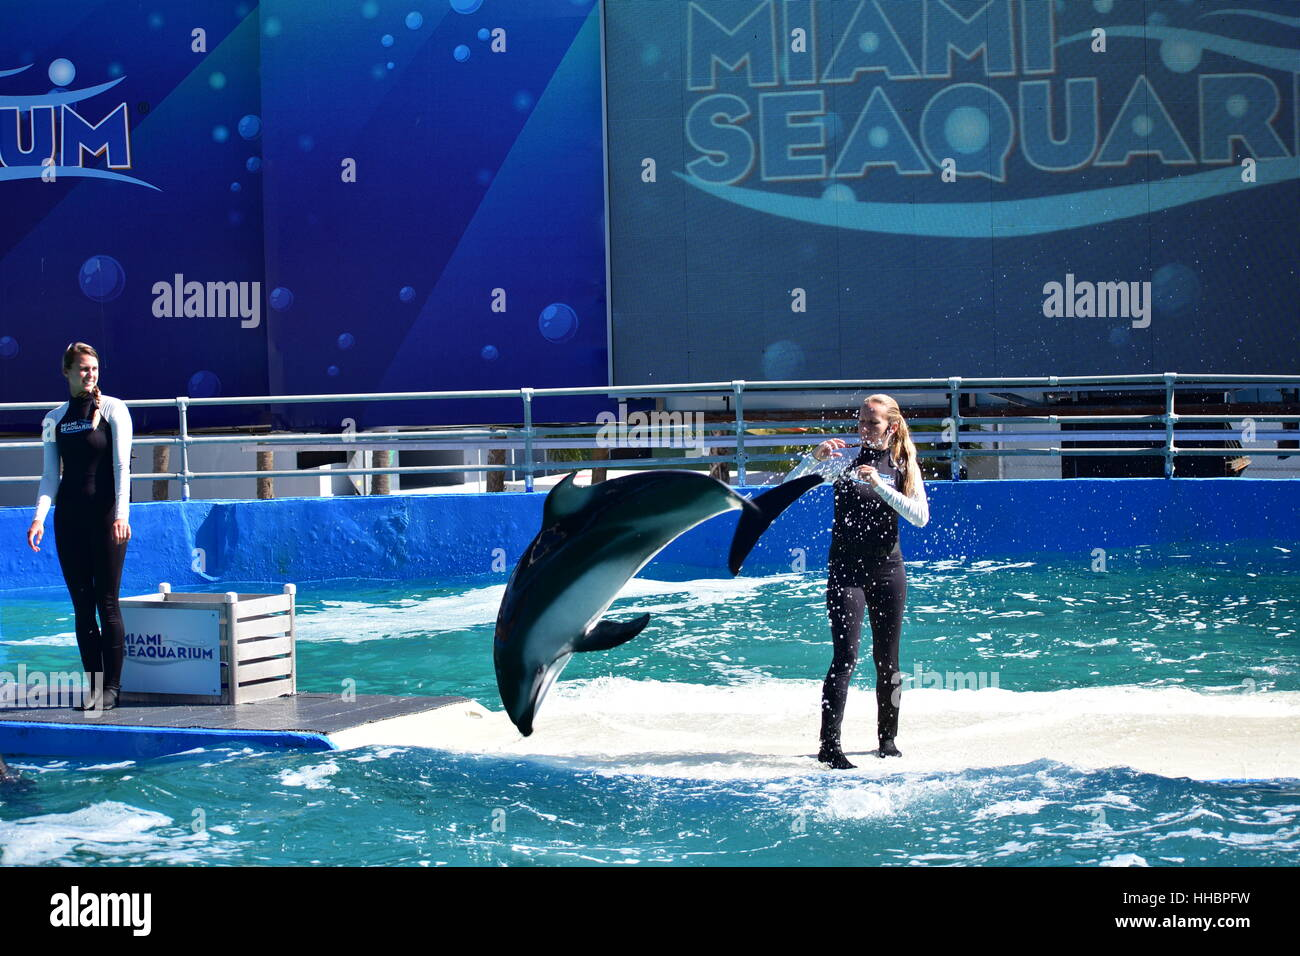 Miami, Florida - USA - January 08, 2016:Miami, Florida - USA - January 08, 2016:The white dolphin Show - Stock Image